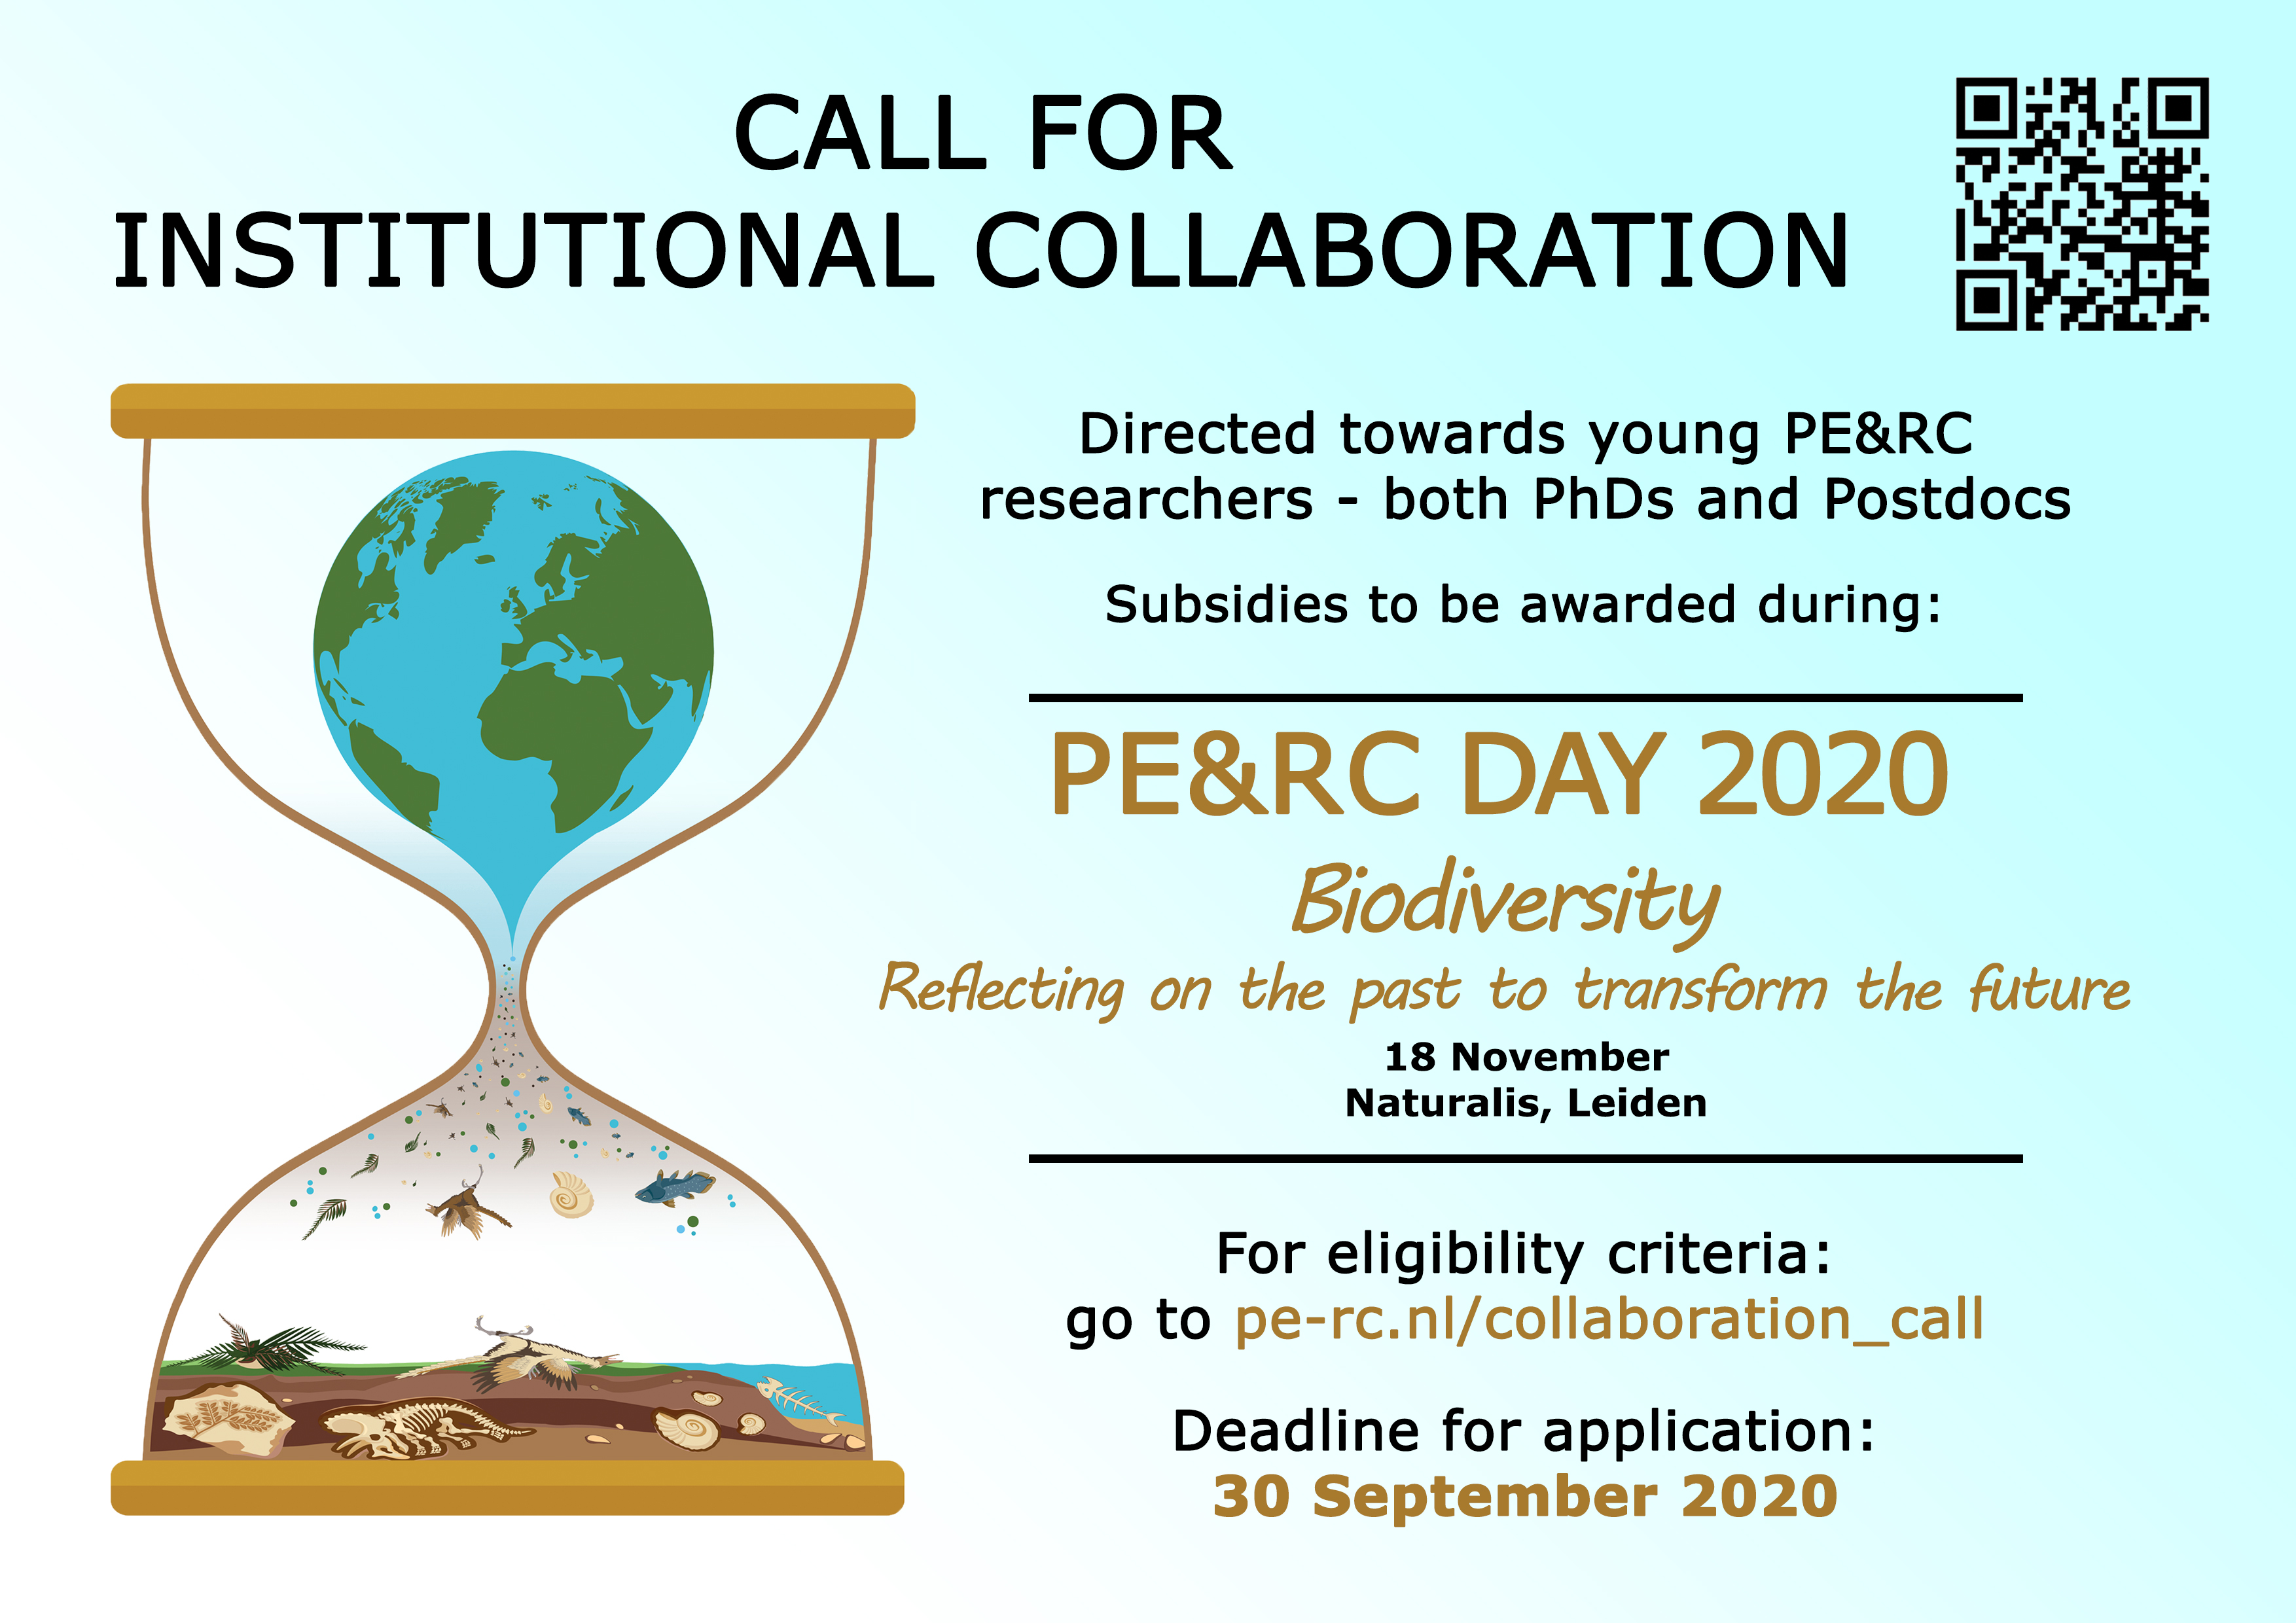 CALL INSTITUTIONAL COLLAB Poster PERC DAY.jpg